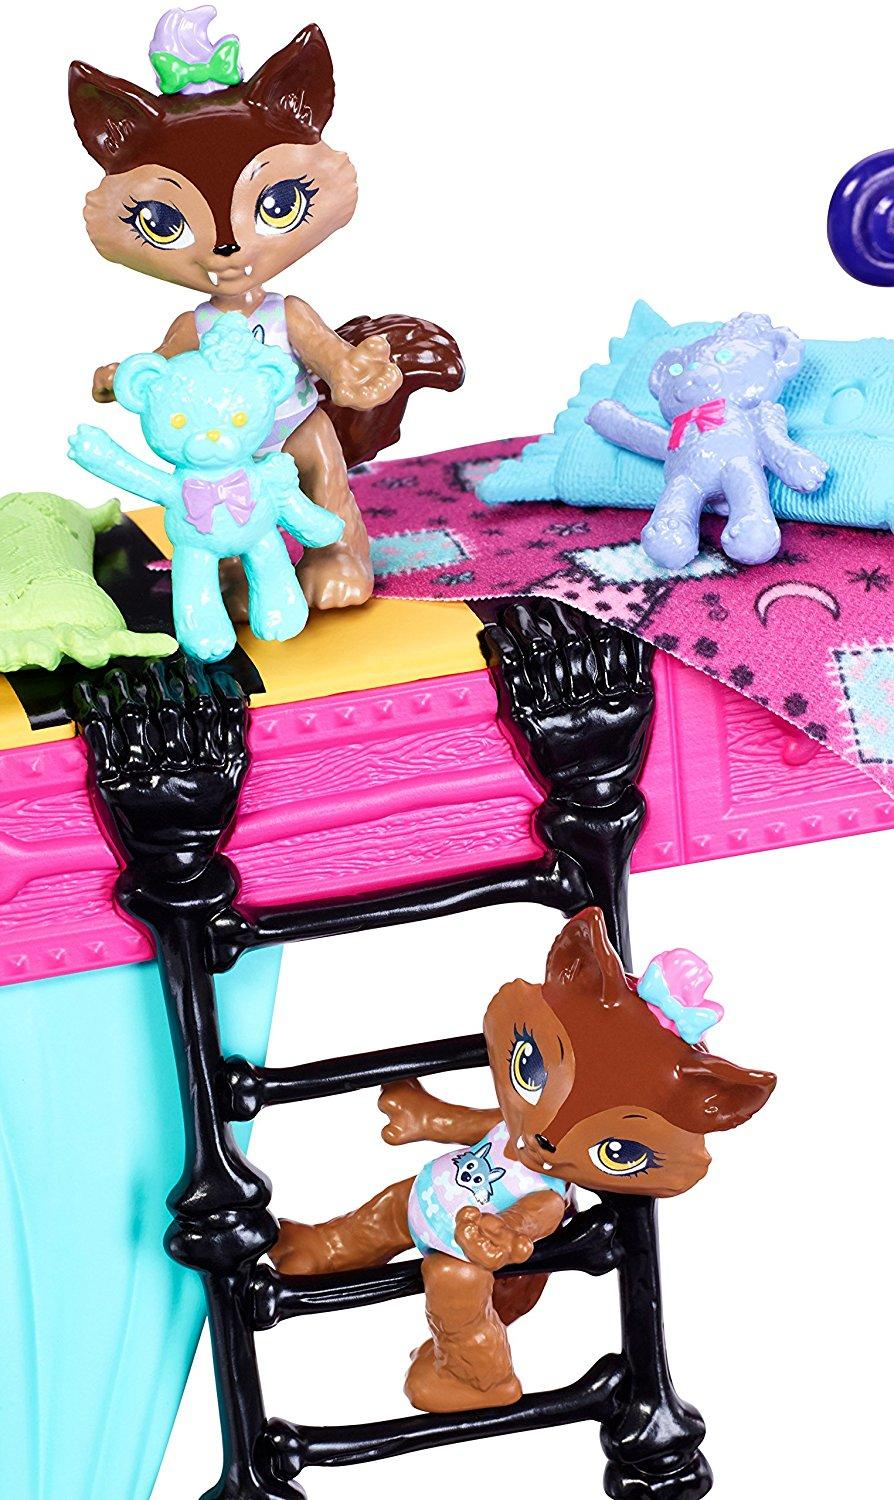 monster high family bunk bed pawla wolf packlyn weredith siblings clawdeen 2018 ebay. Black Bedroom Furniture Sets. Home Design Ideas